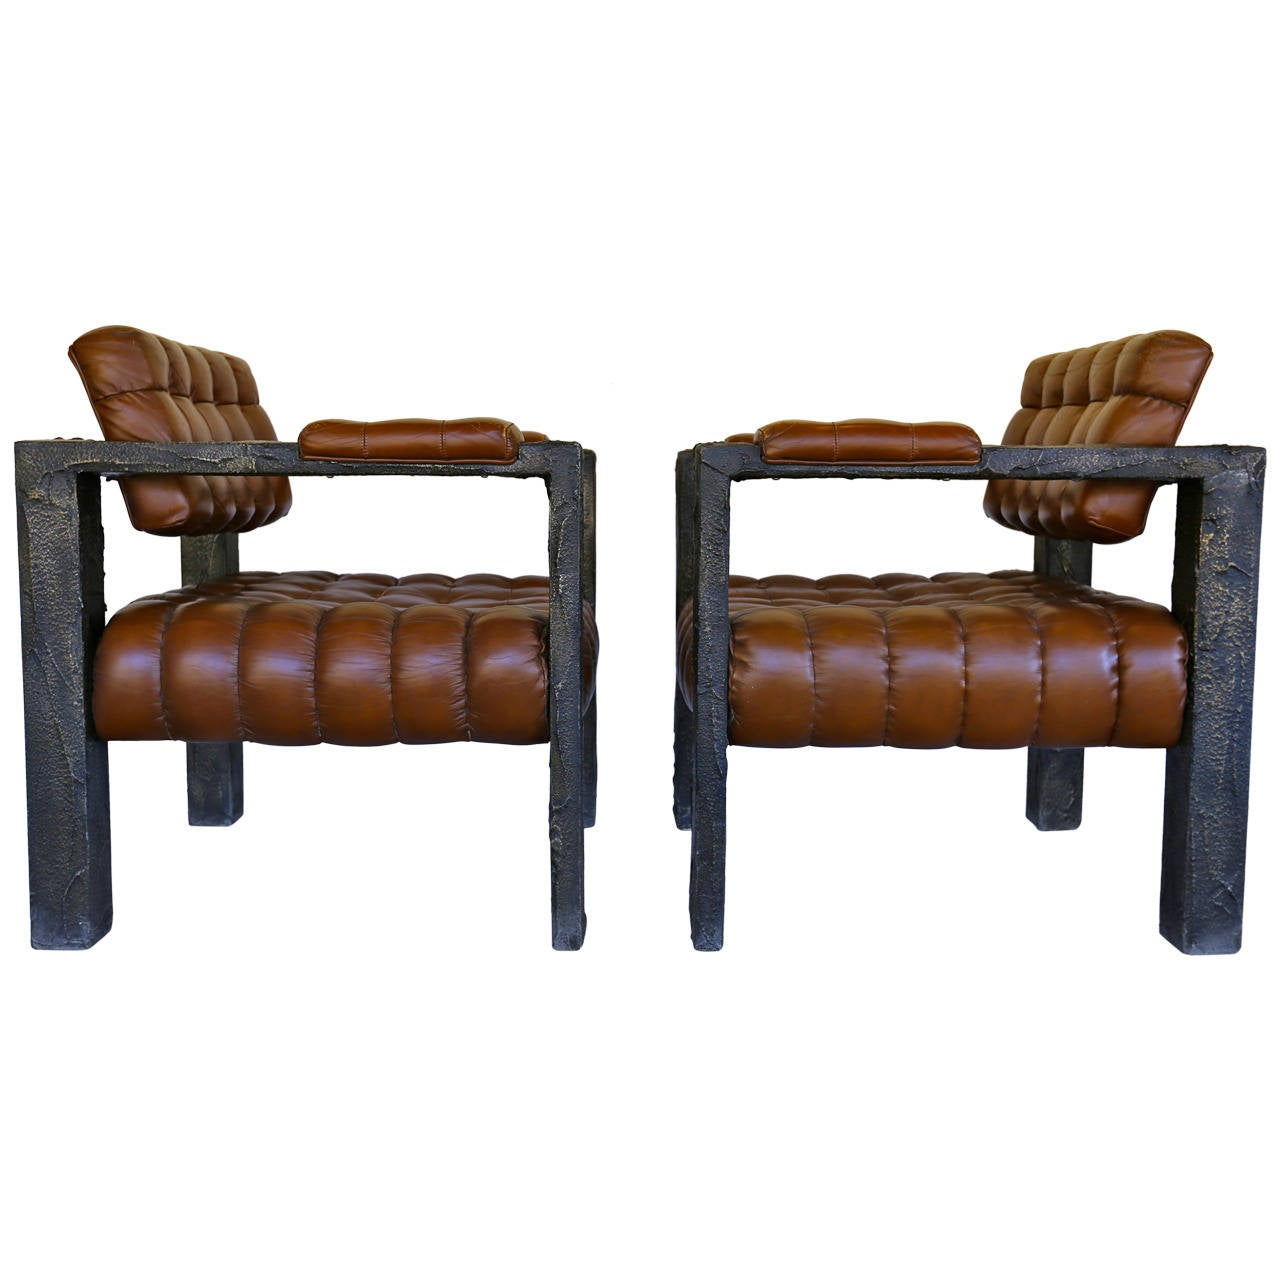 Custom Sculpted Lounge Chairs by Paul Evans Signed PE 71